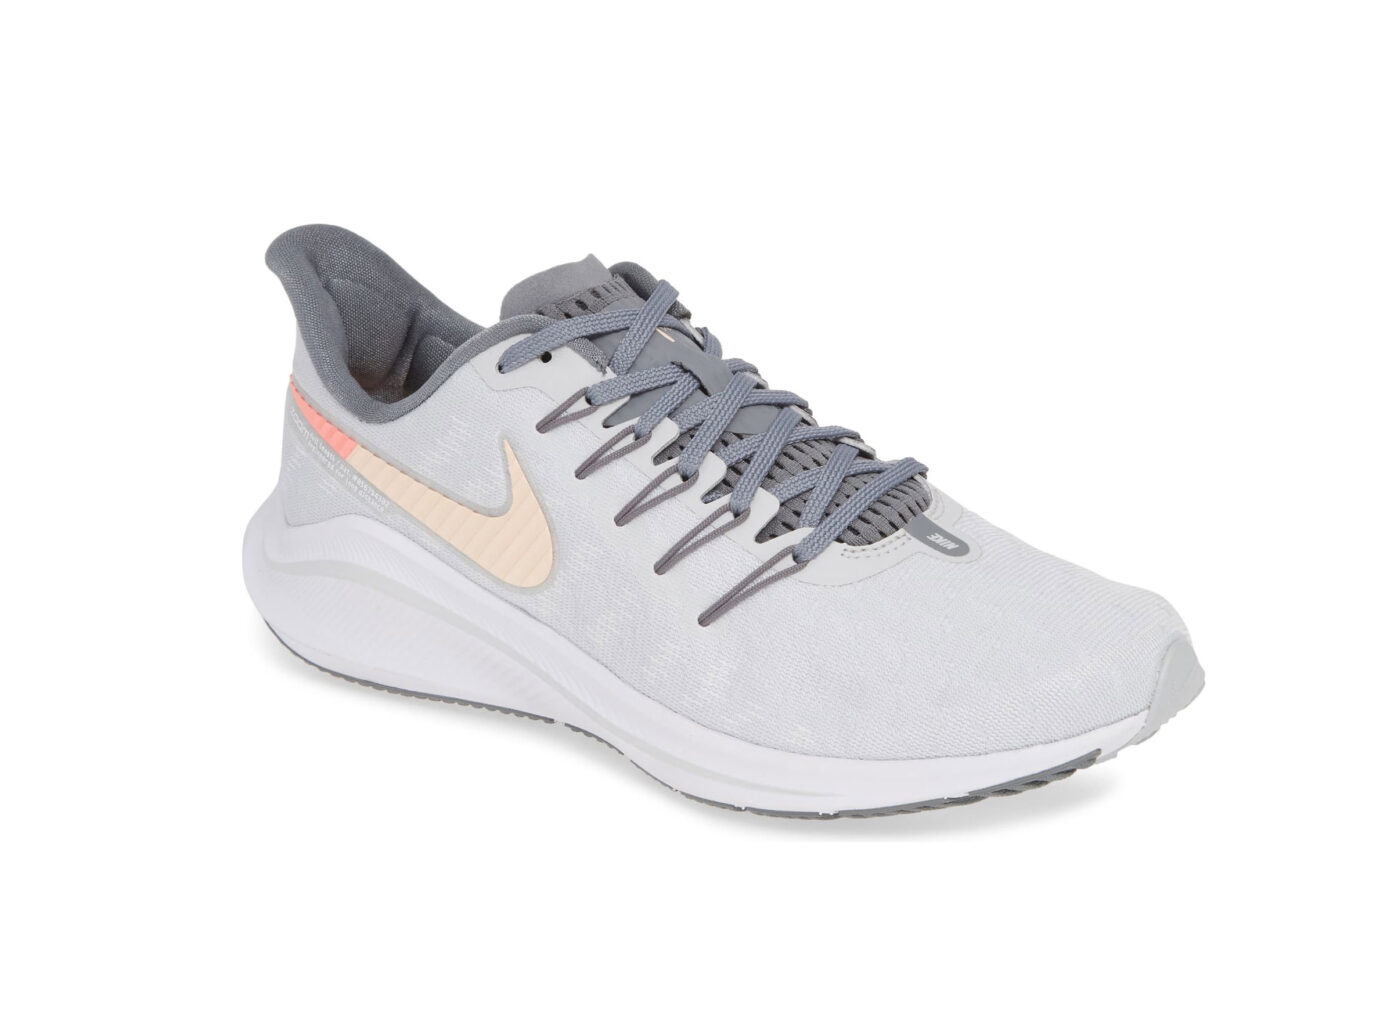 Nike Air Zoom Vomero 14 Running Shoe